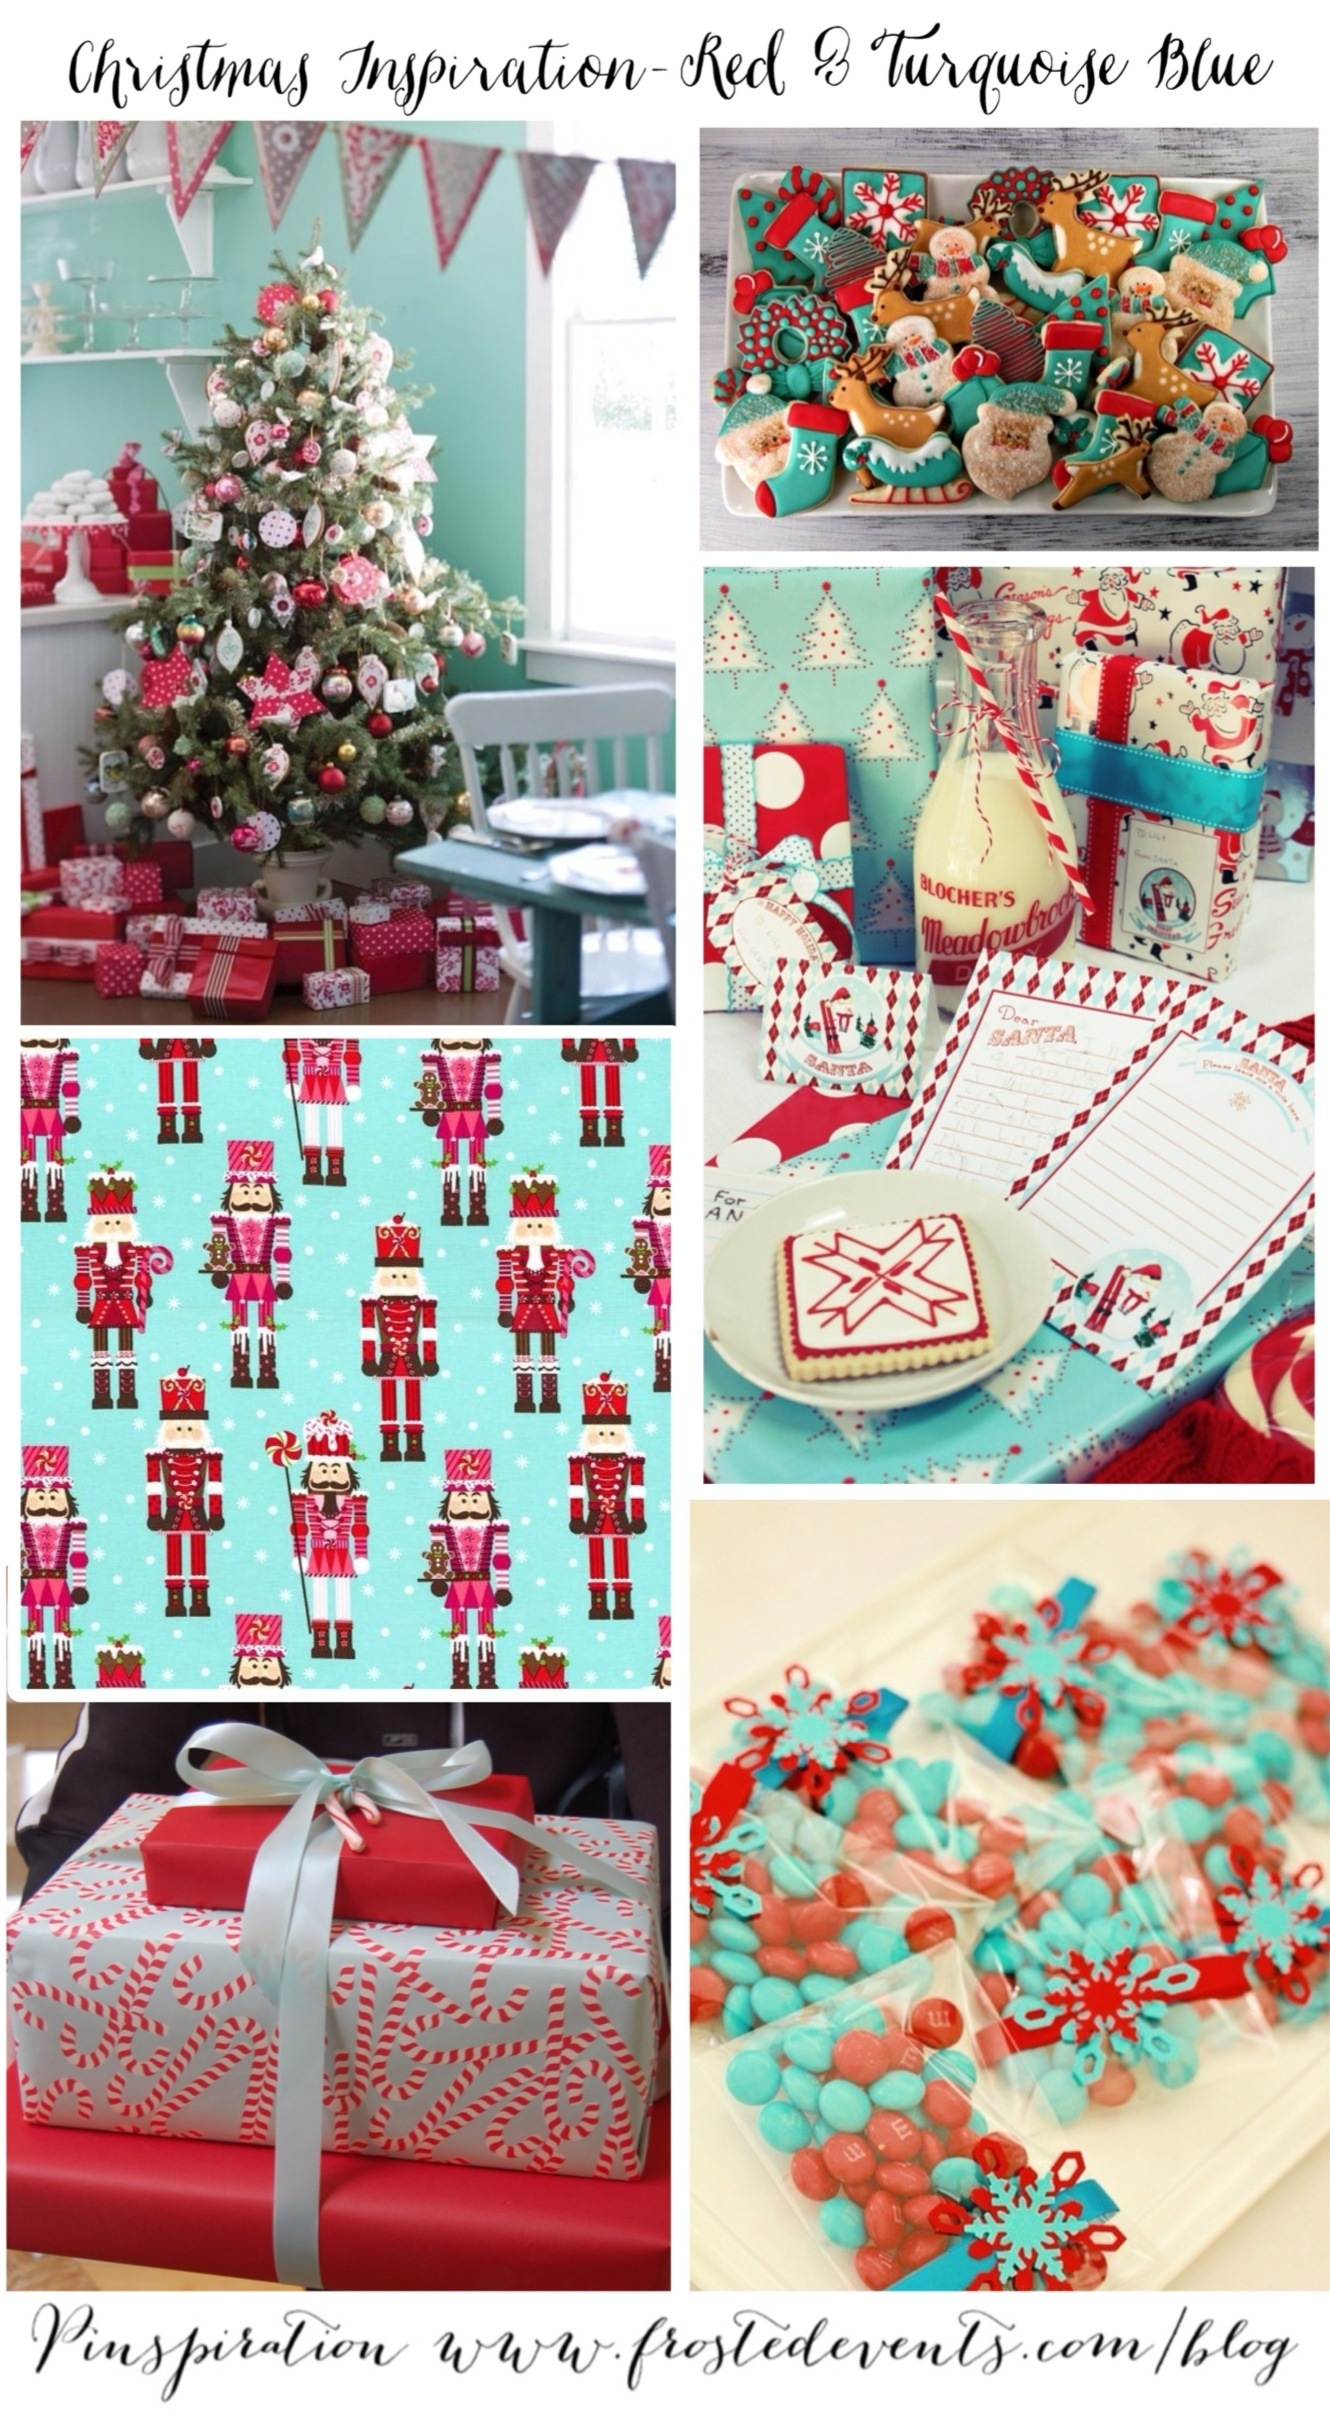 Christmas Inspiration- Red & Turquoise Blue www.frostedevents.com